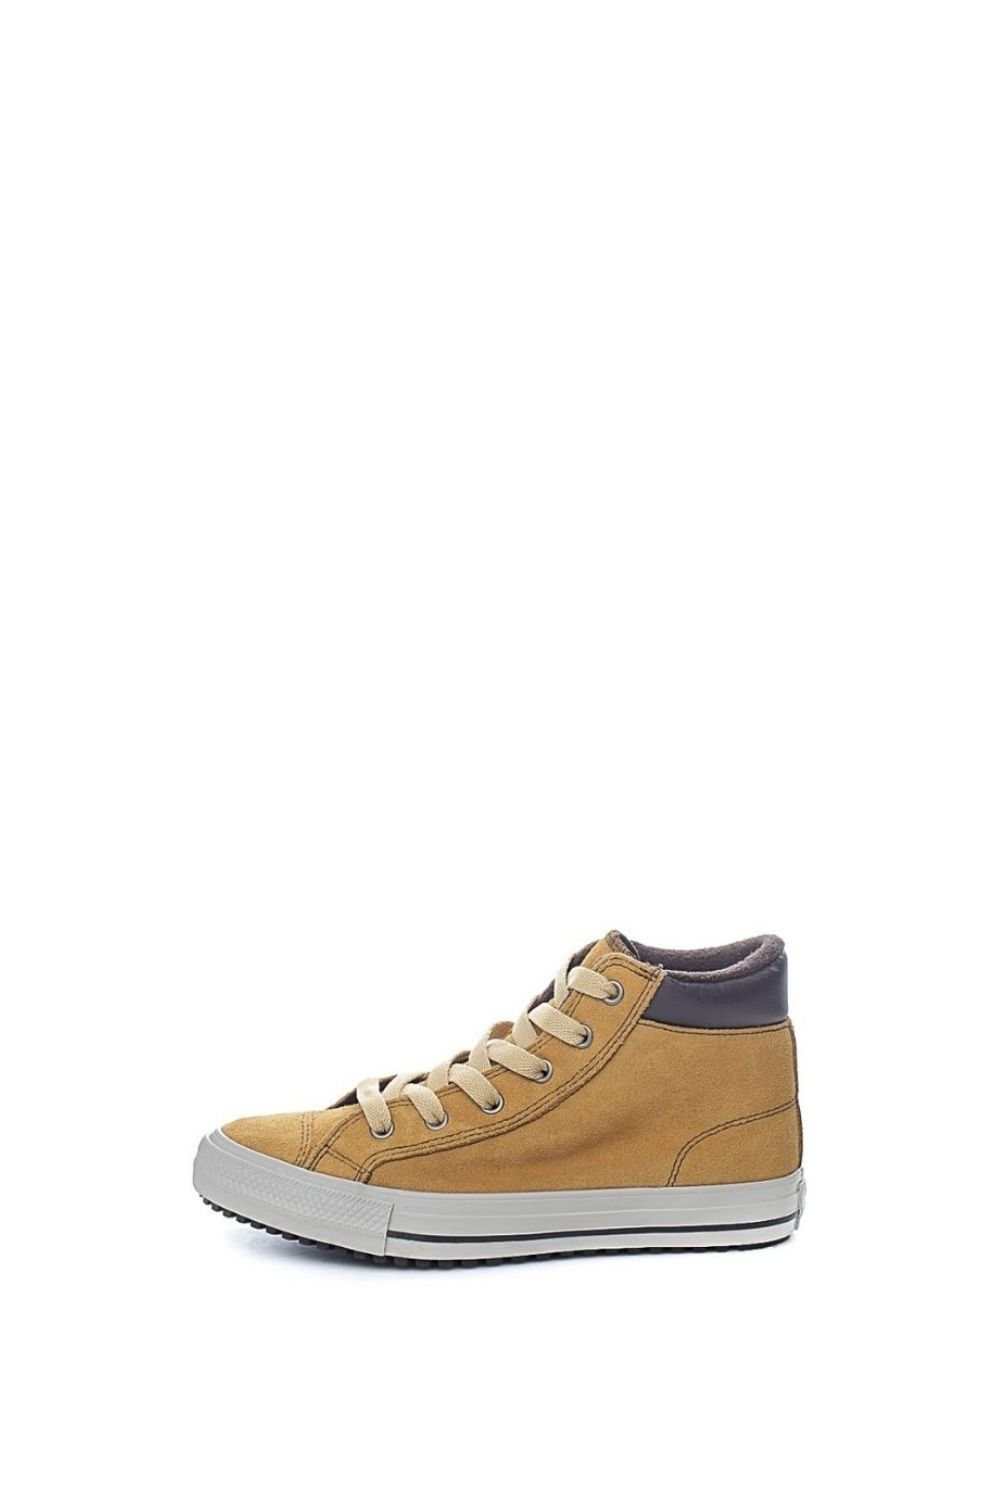 CONVERSE – Παιδικά sneakers CHUCK TAYLOR ALL STAR CONVERSE ταμπά